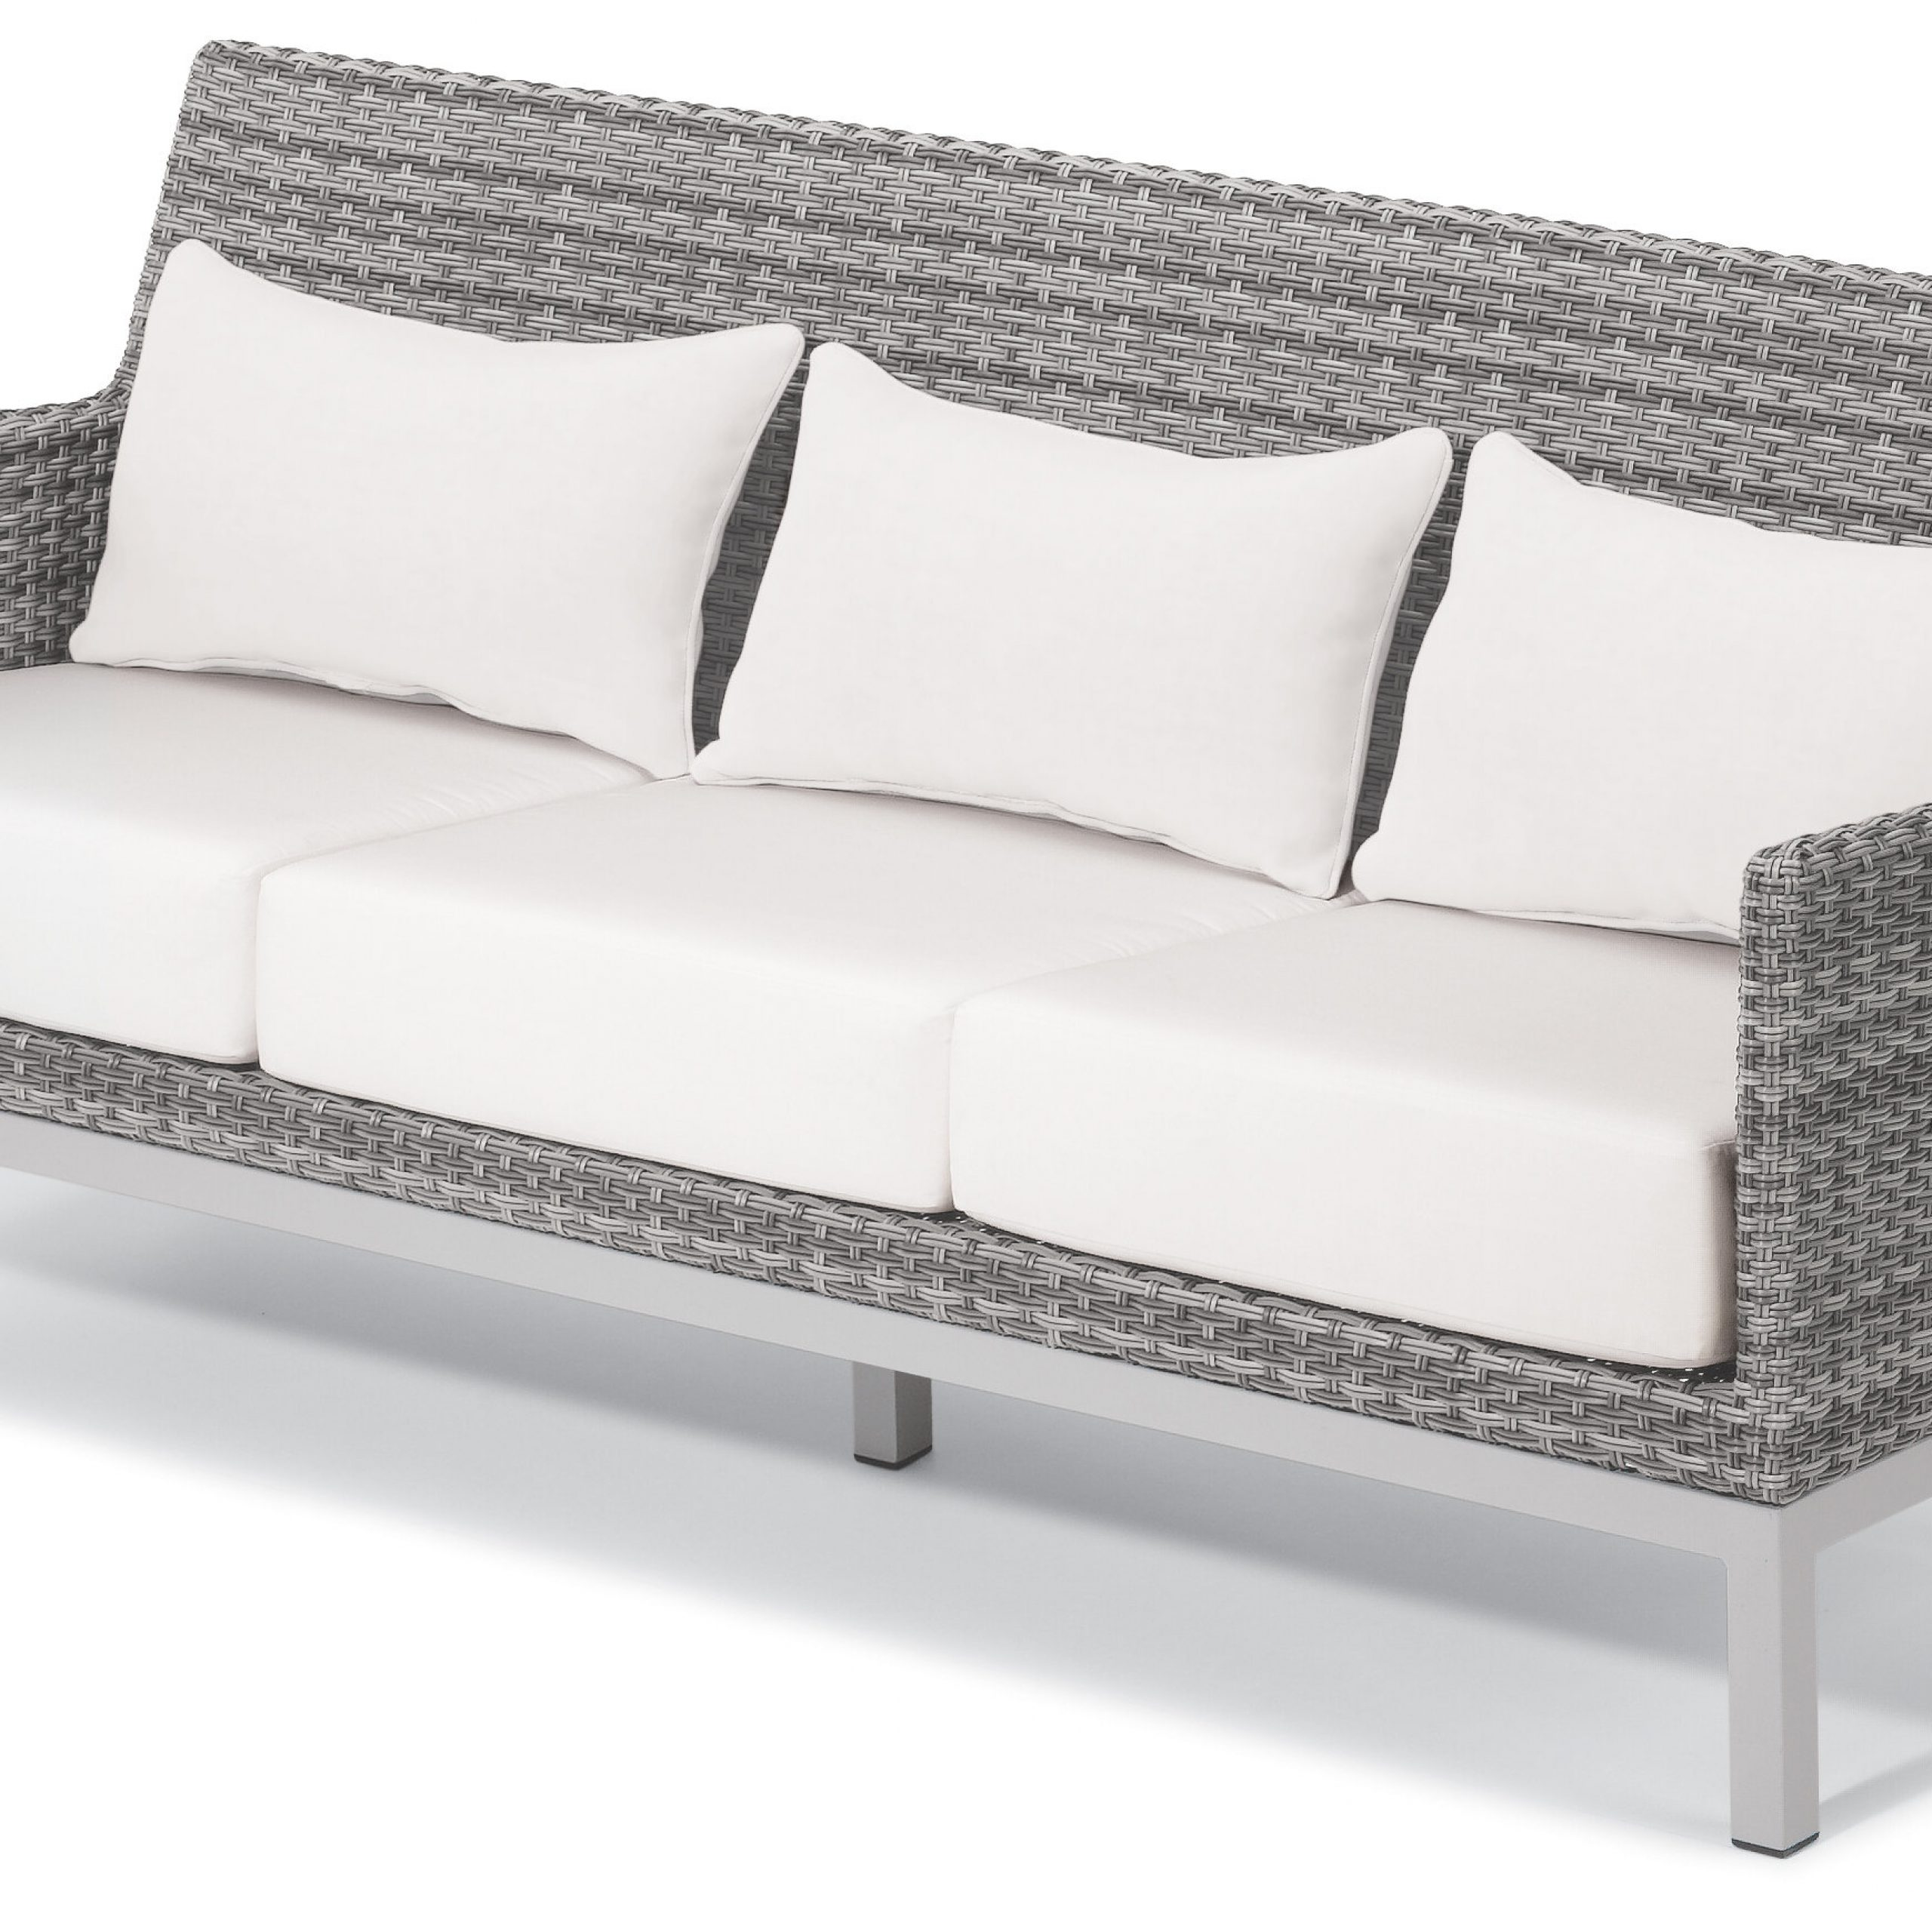 Saleem Loveseats With Cushions With Regard To Latest Saleem Patio Sofa With Cushions And Lumbar Pillows (View 20 of 25)